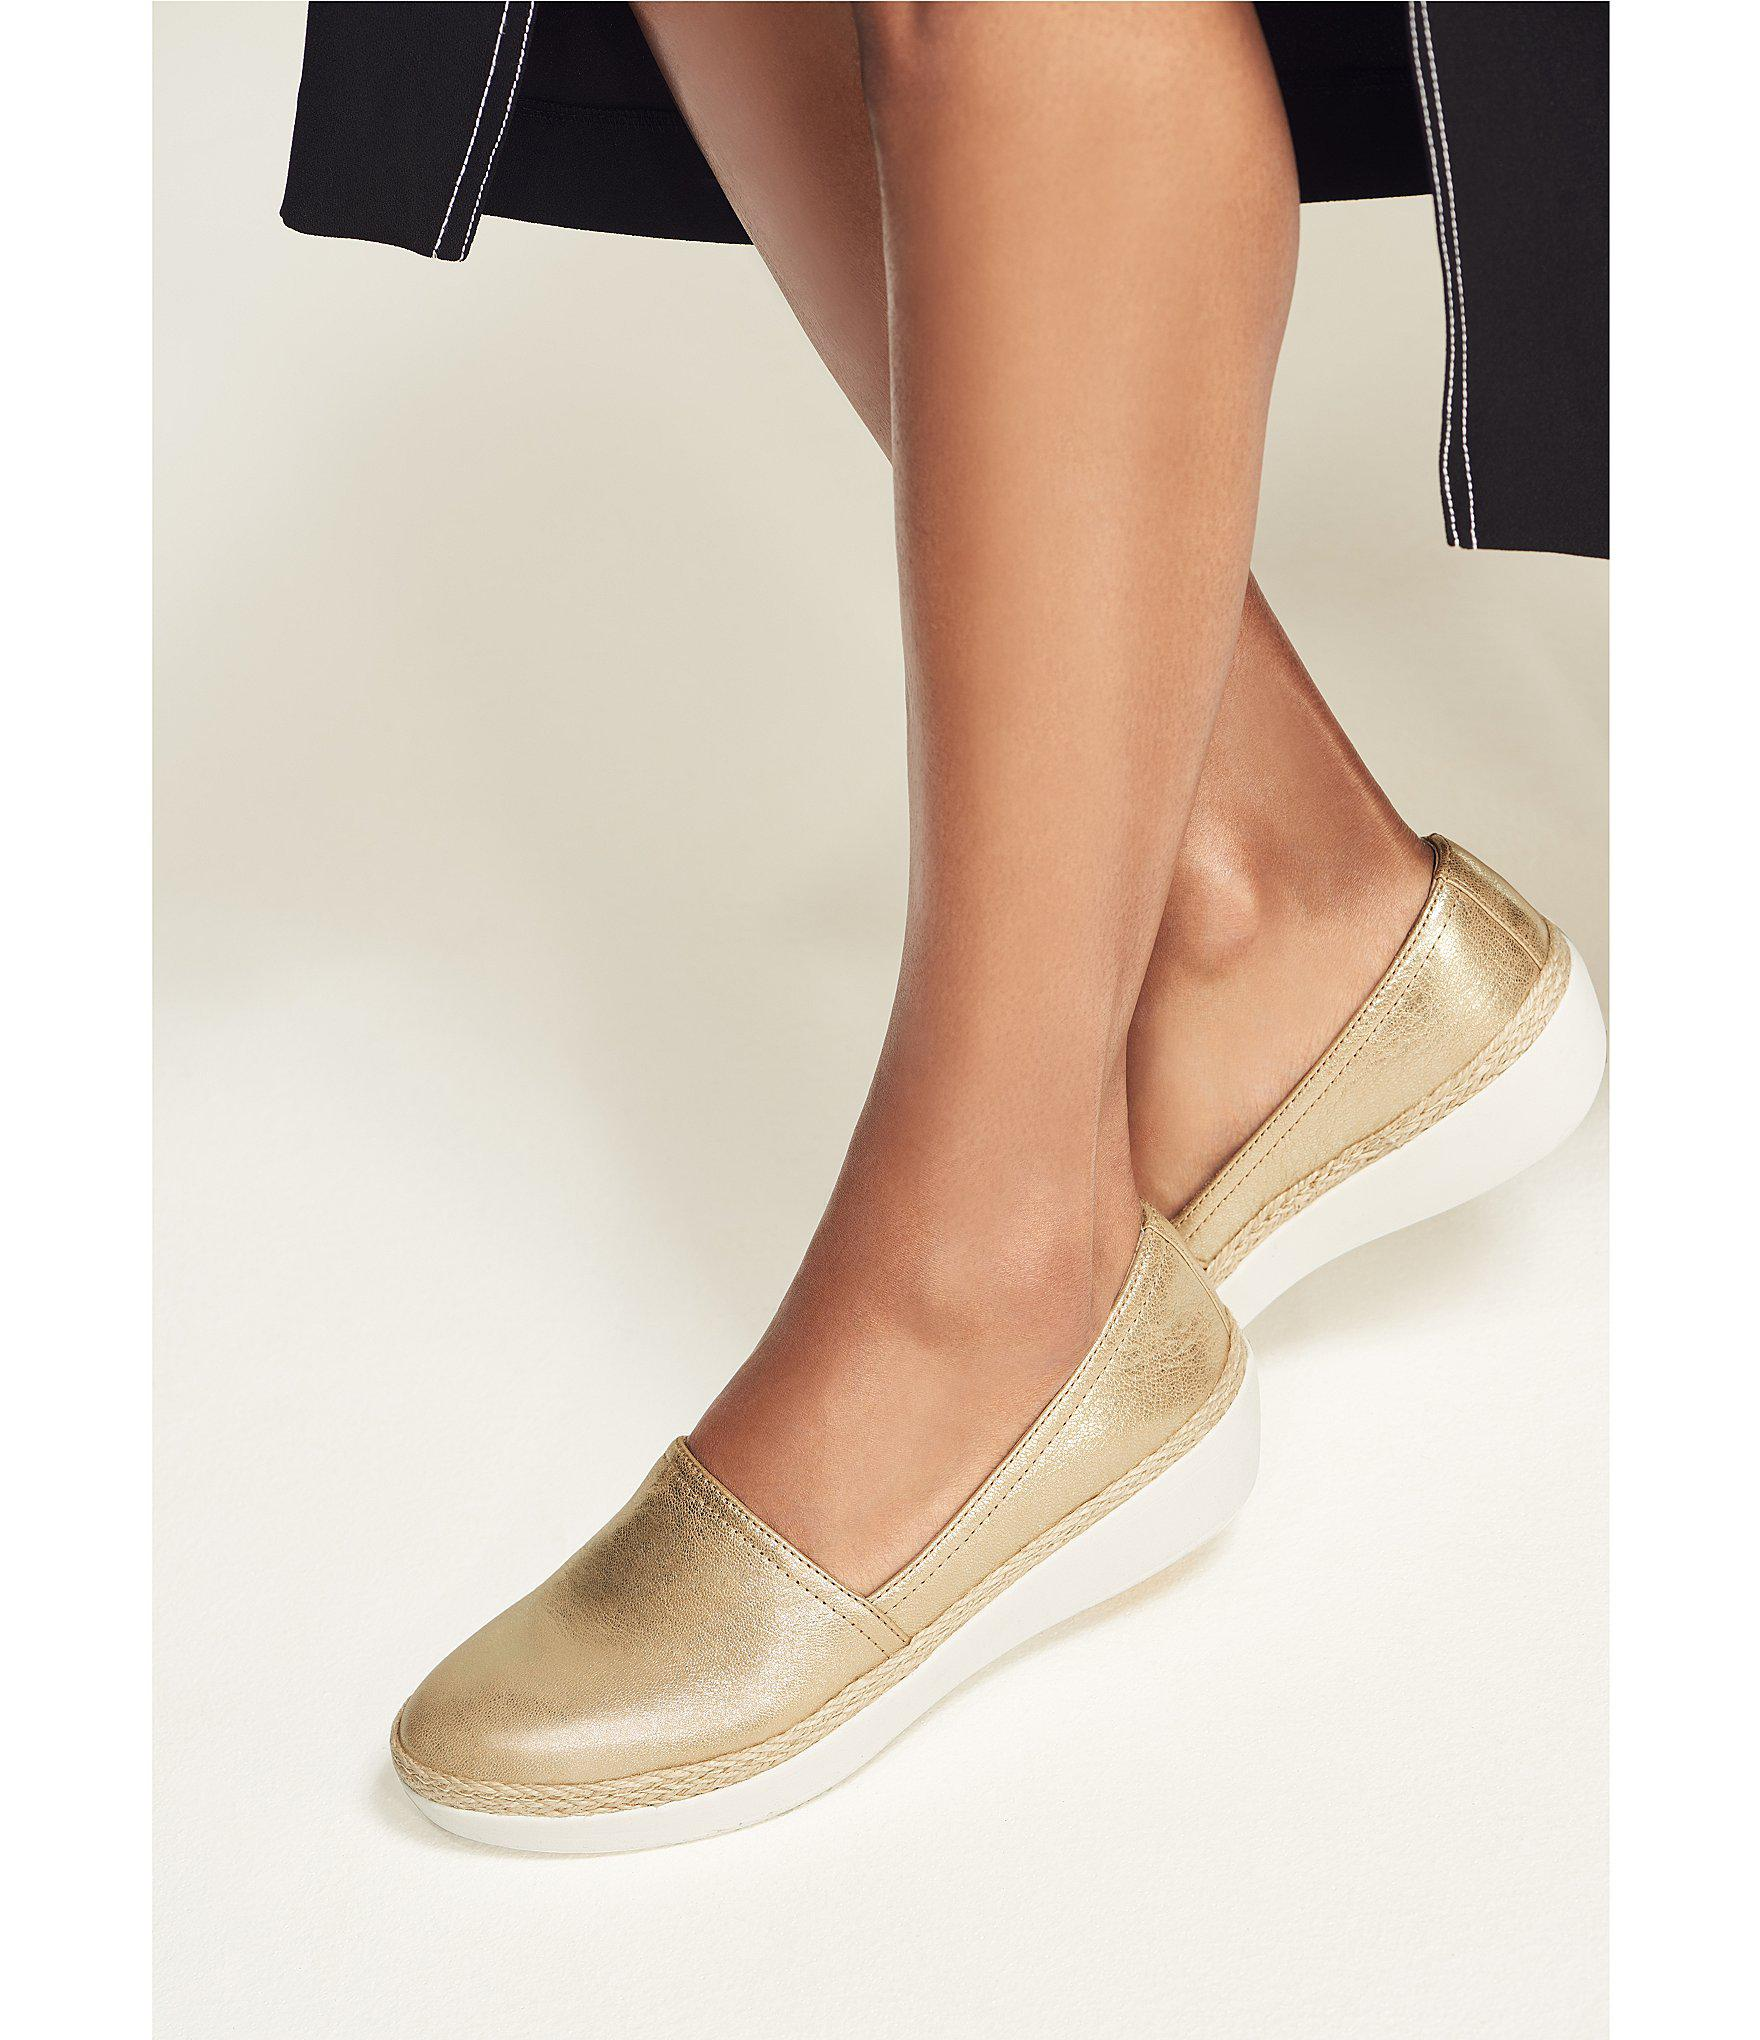 d45e512fb16 Lyst - Fitflop Casa Metallic Leather Slip-on Loafers in Metallic